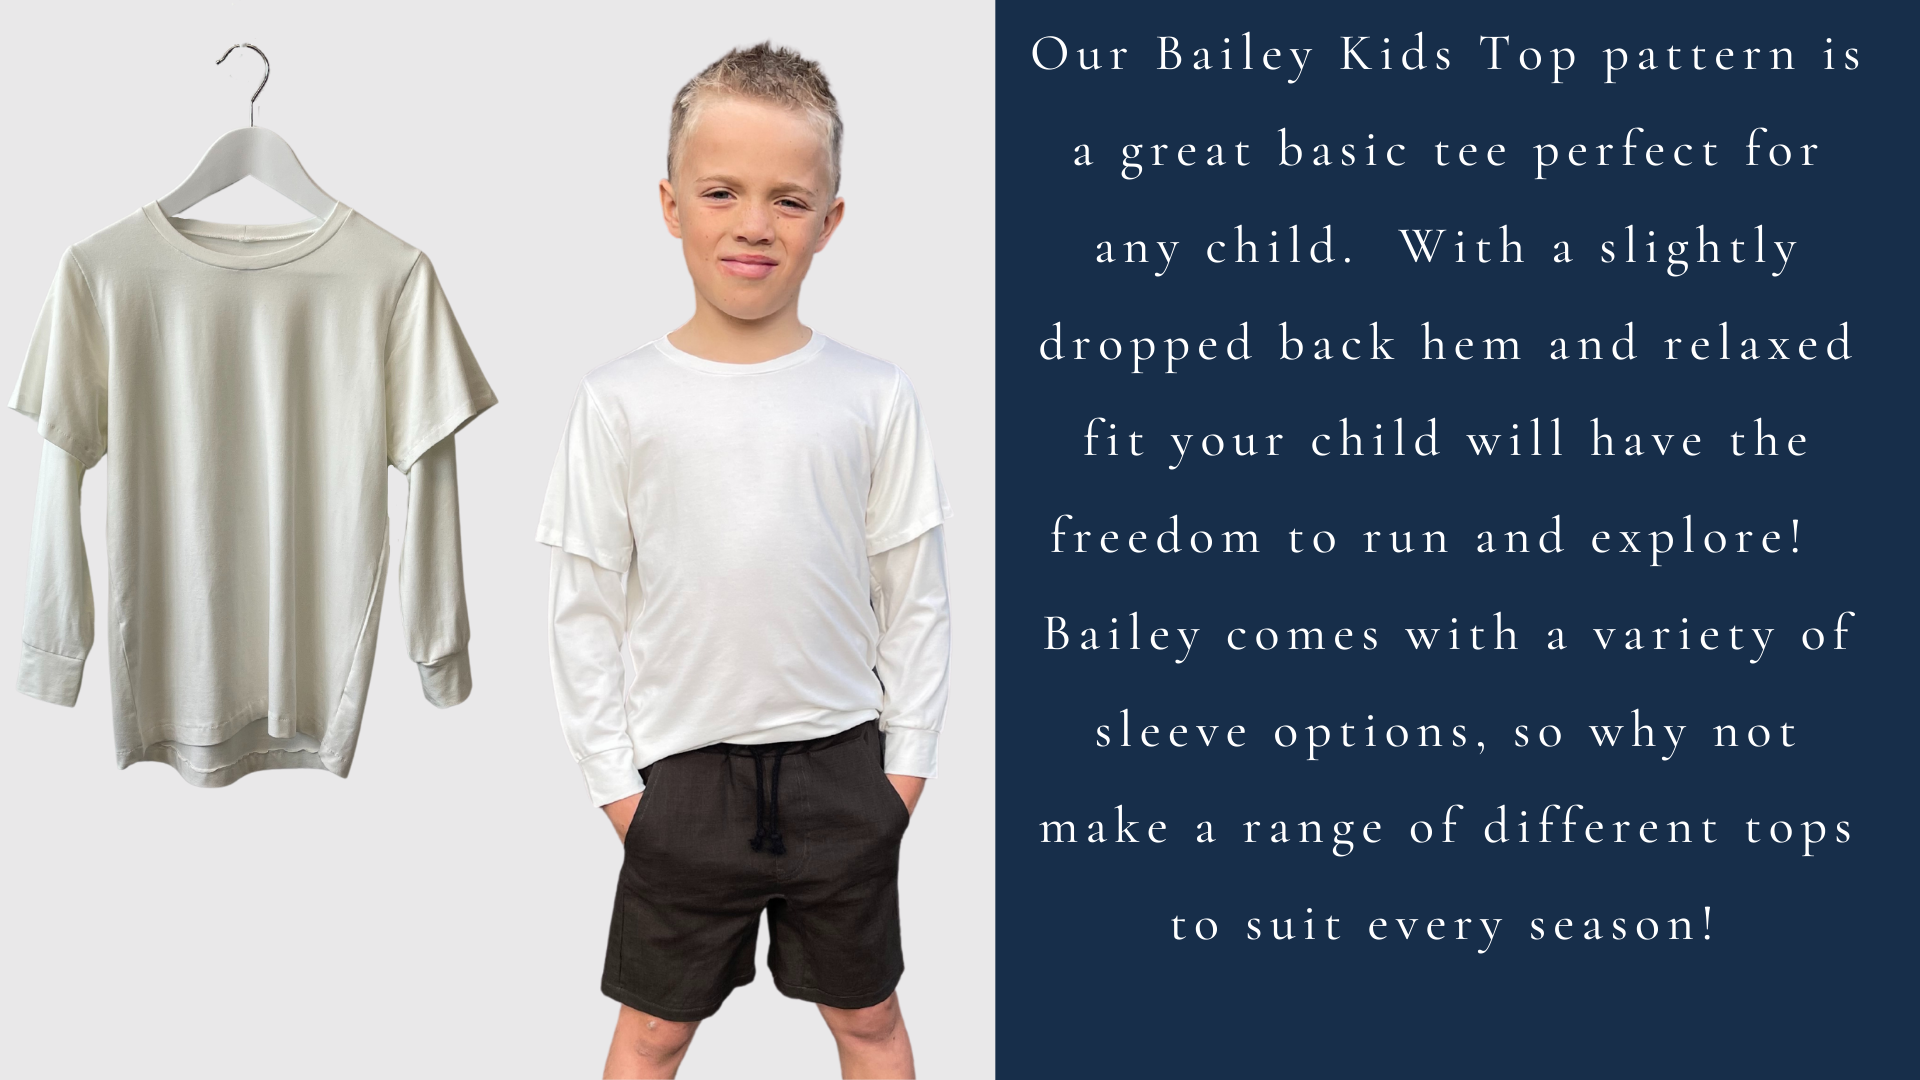 Style Arc's latest release the Bailey Kids Top pattern is available now